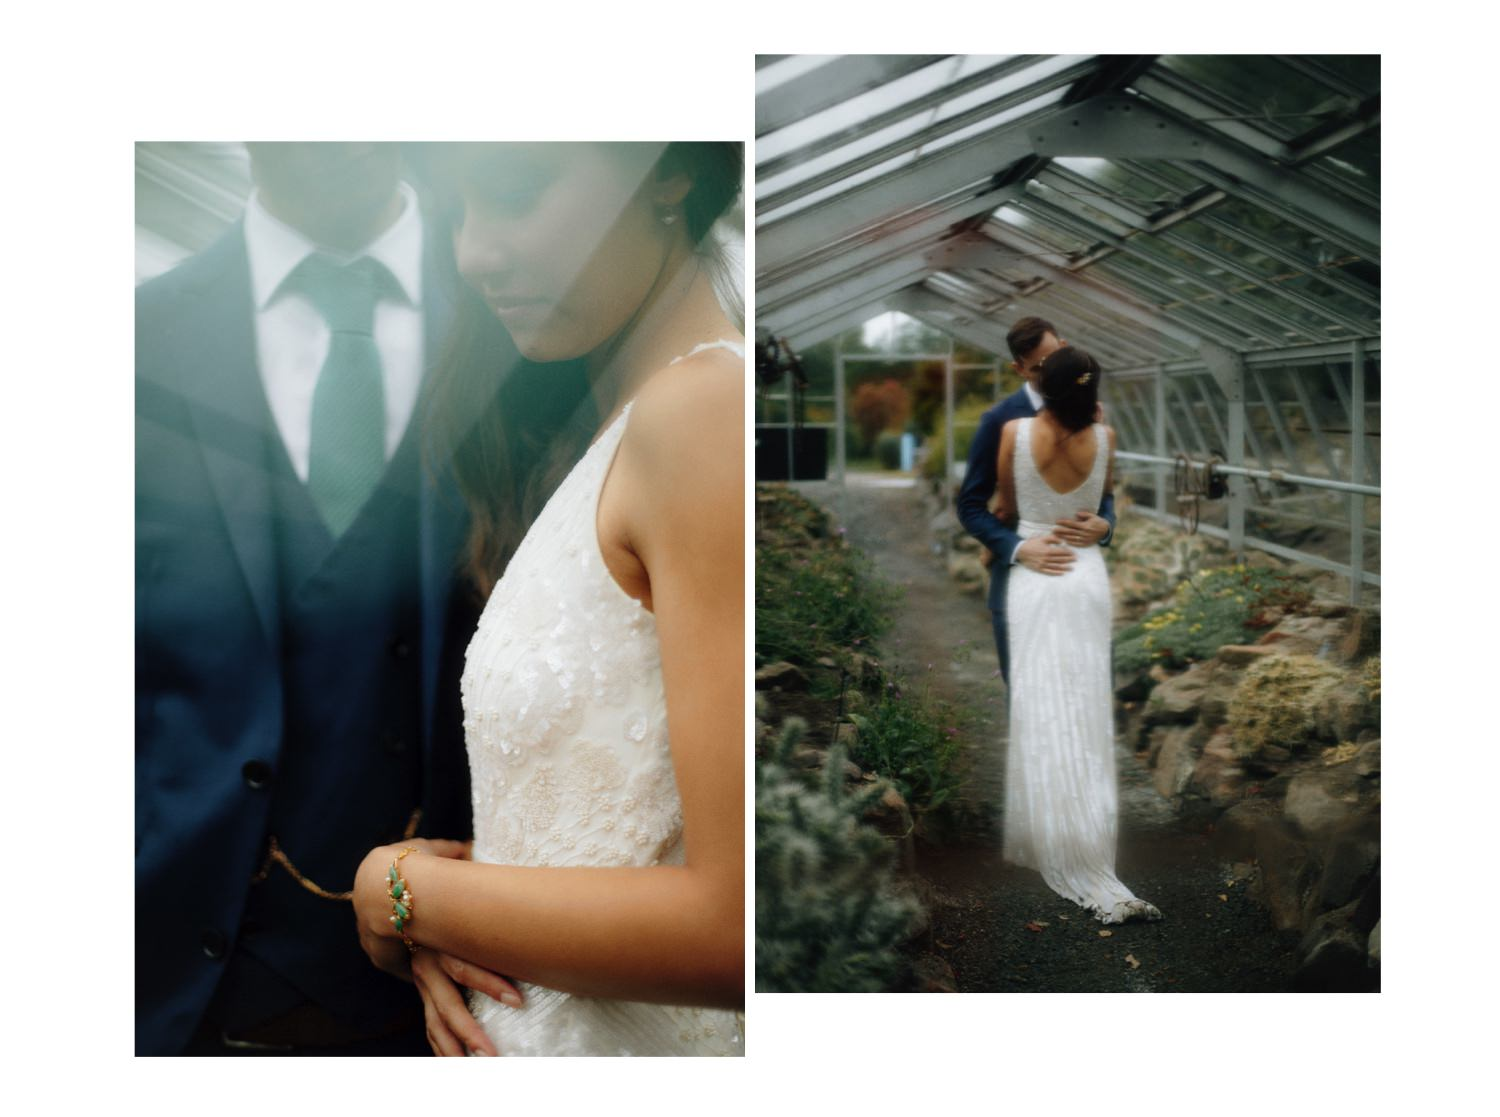 wedding portraits inside greenhouse at ubc botanical garden